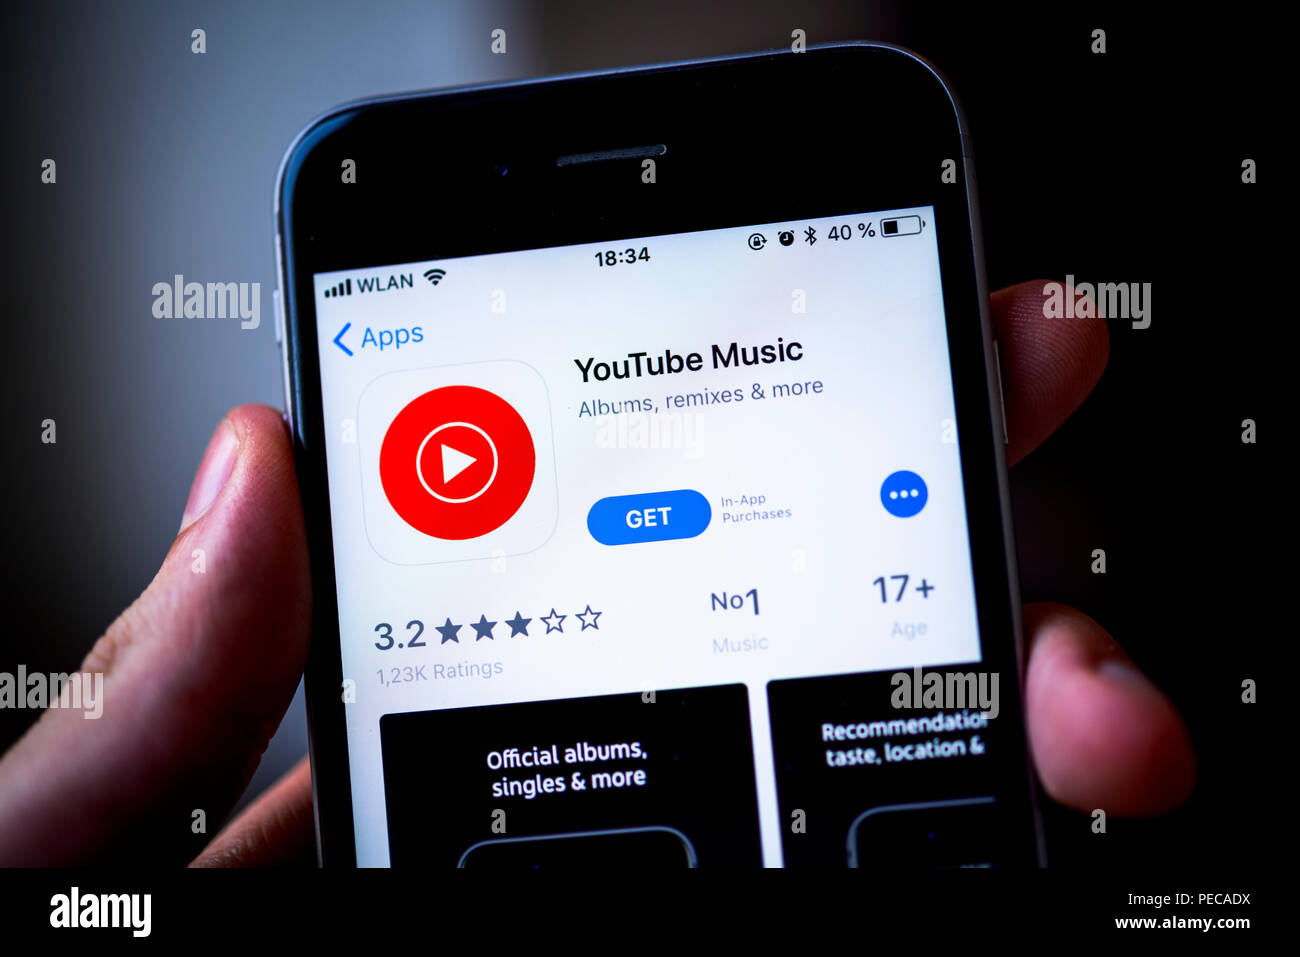 Hand holding iPhone with YouTube Music App in the Apple App Store